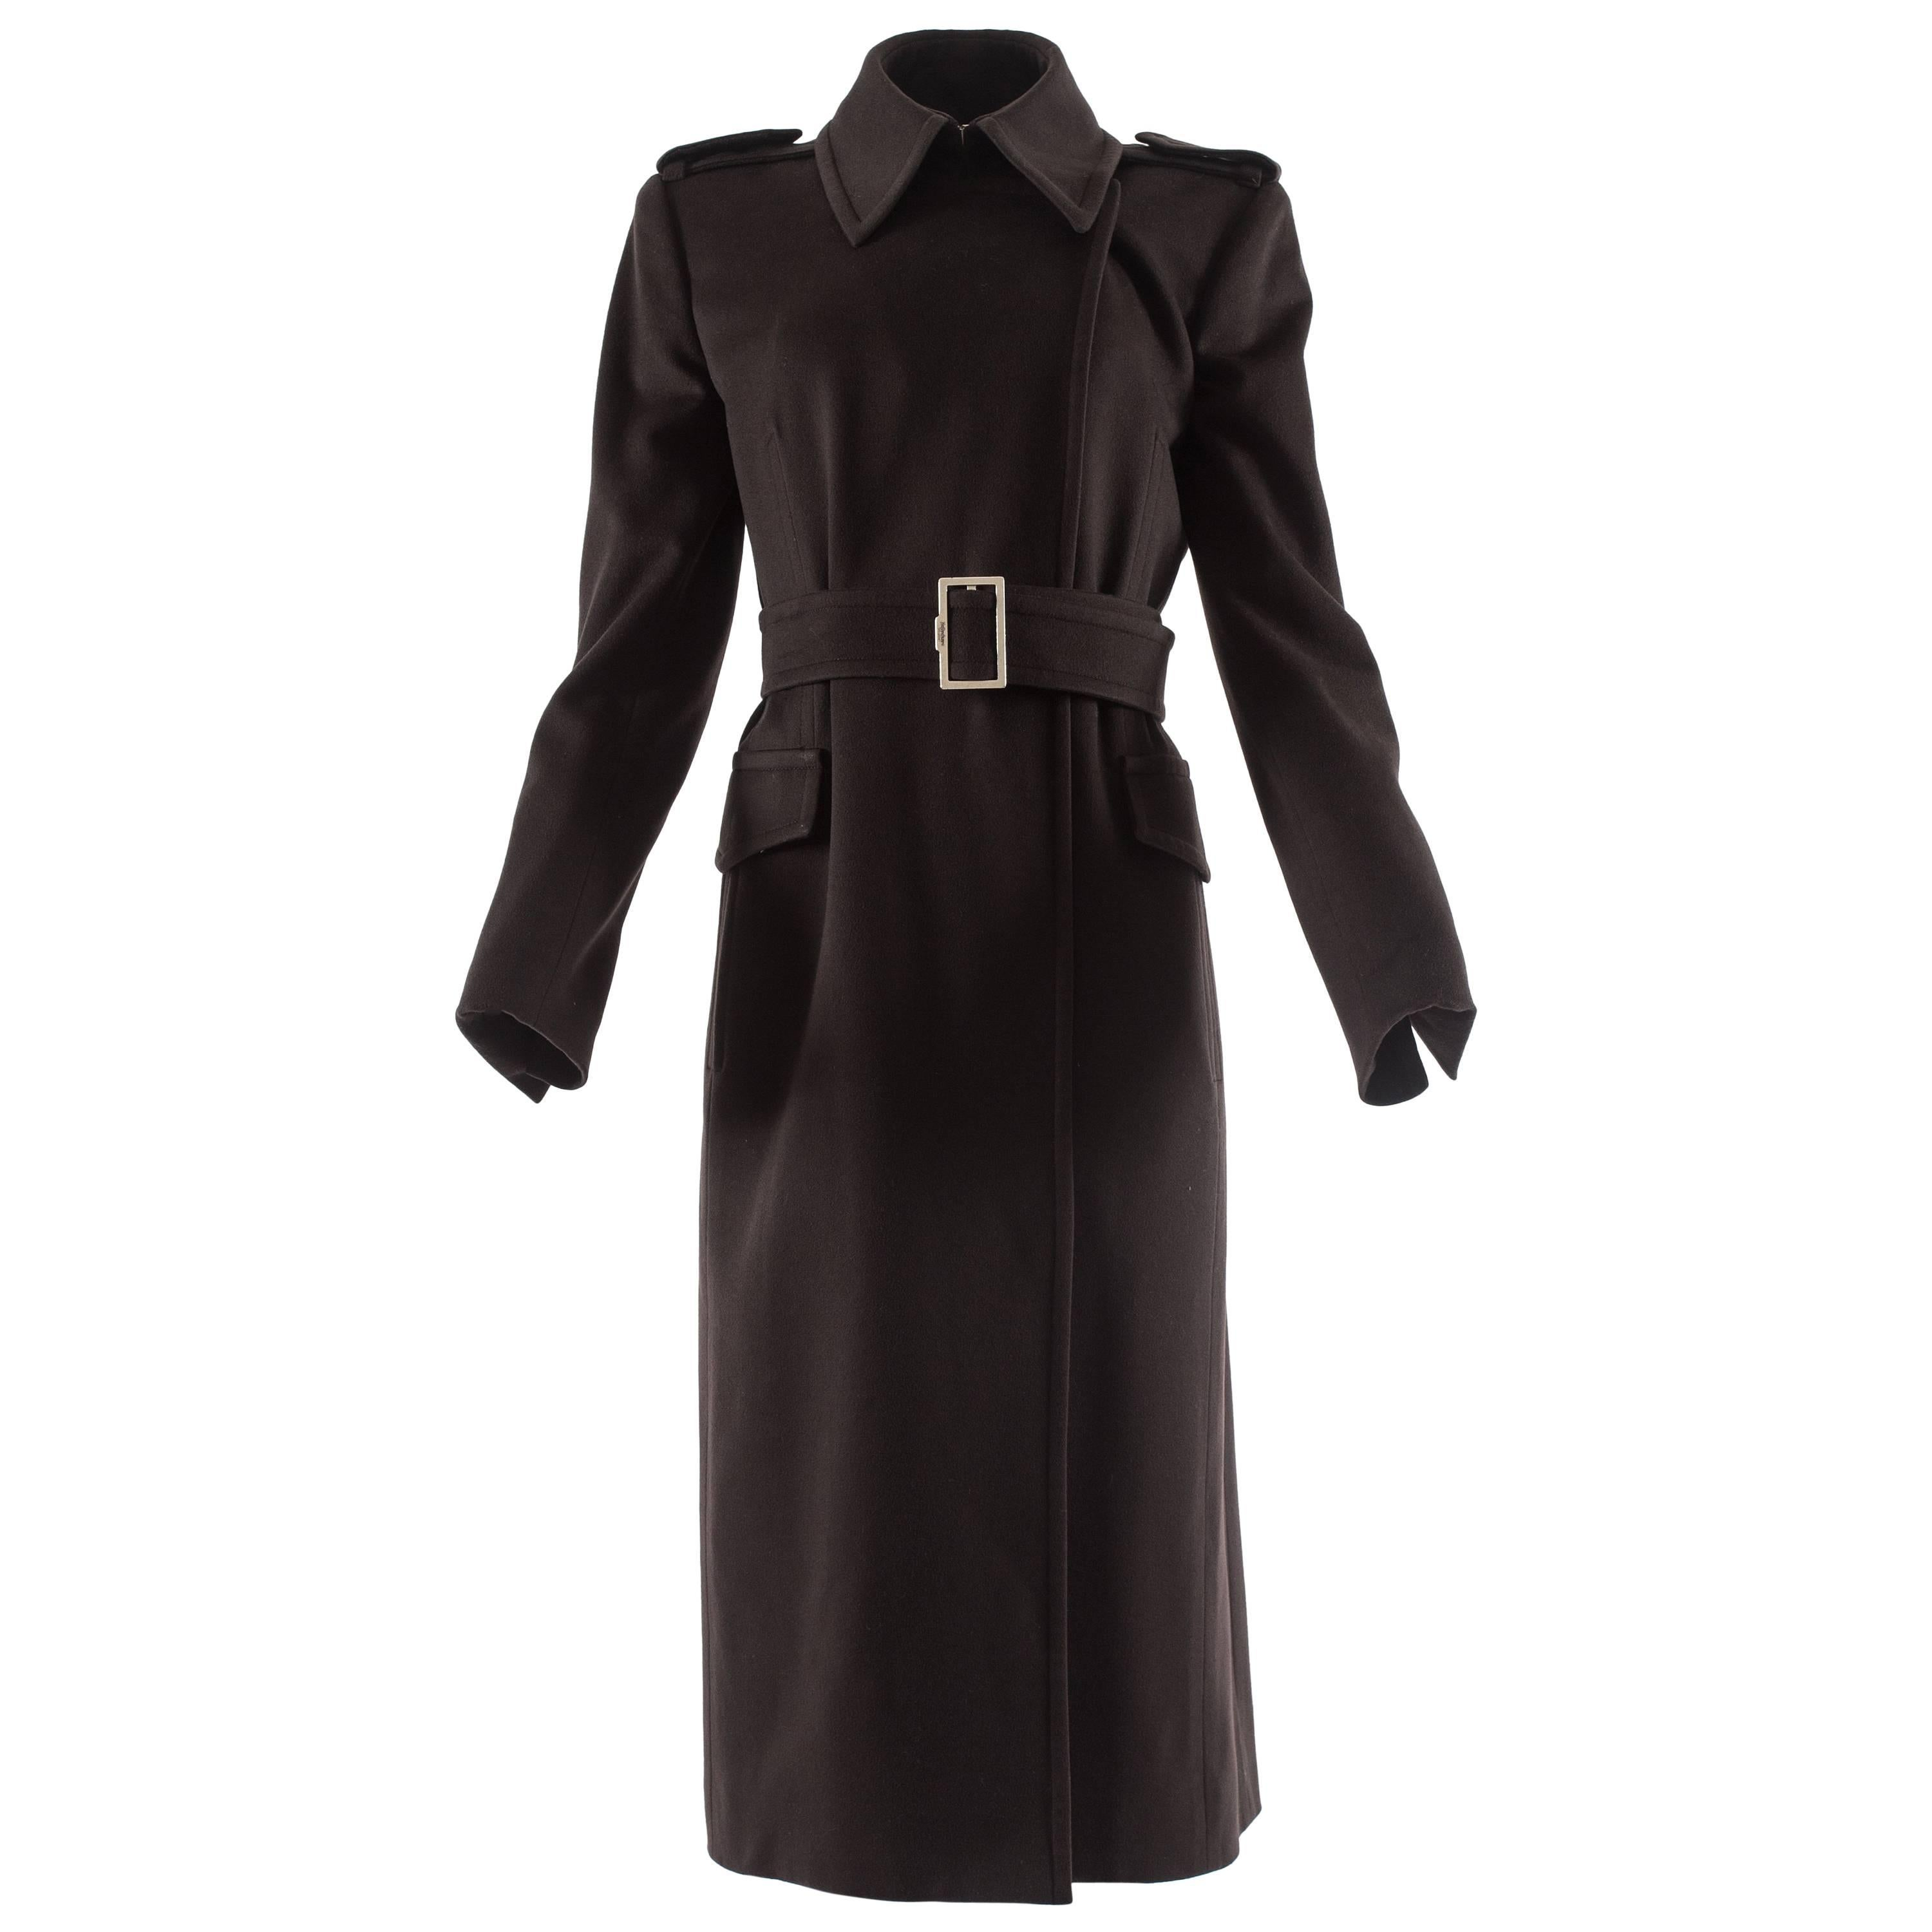 09c00fd7826 RARE TOM FORD for GUCCI F W 2004 FOX GOAT LEATHER BLACK COAT For Sale at  1stdibs